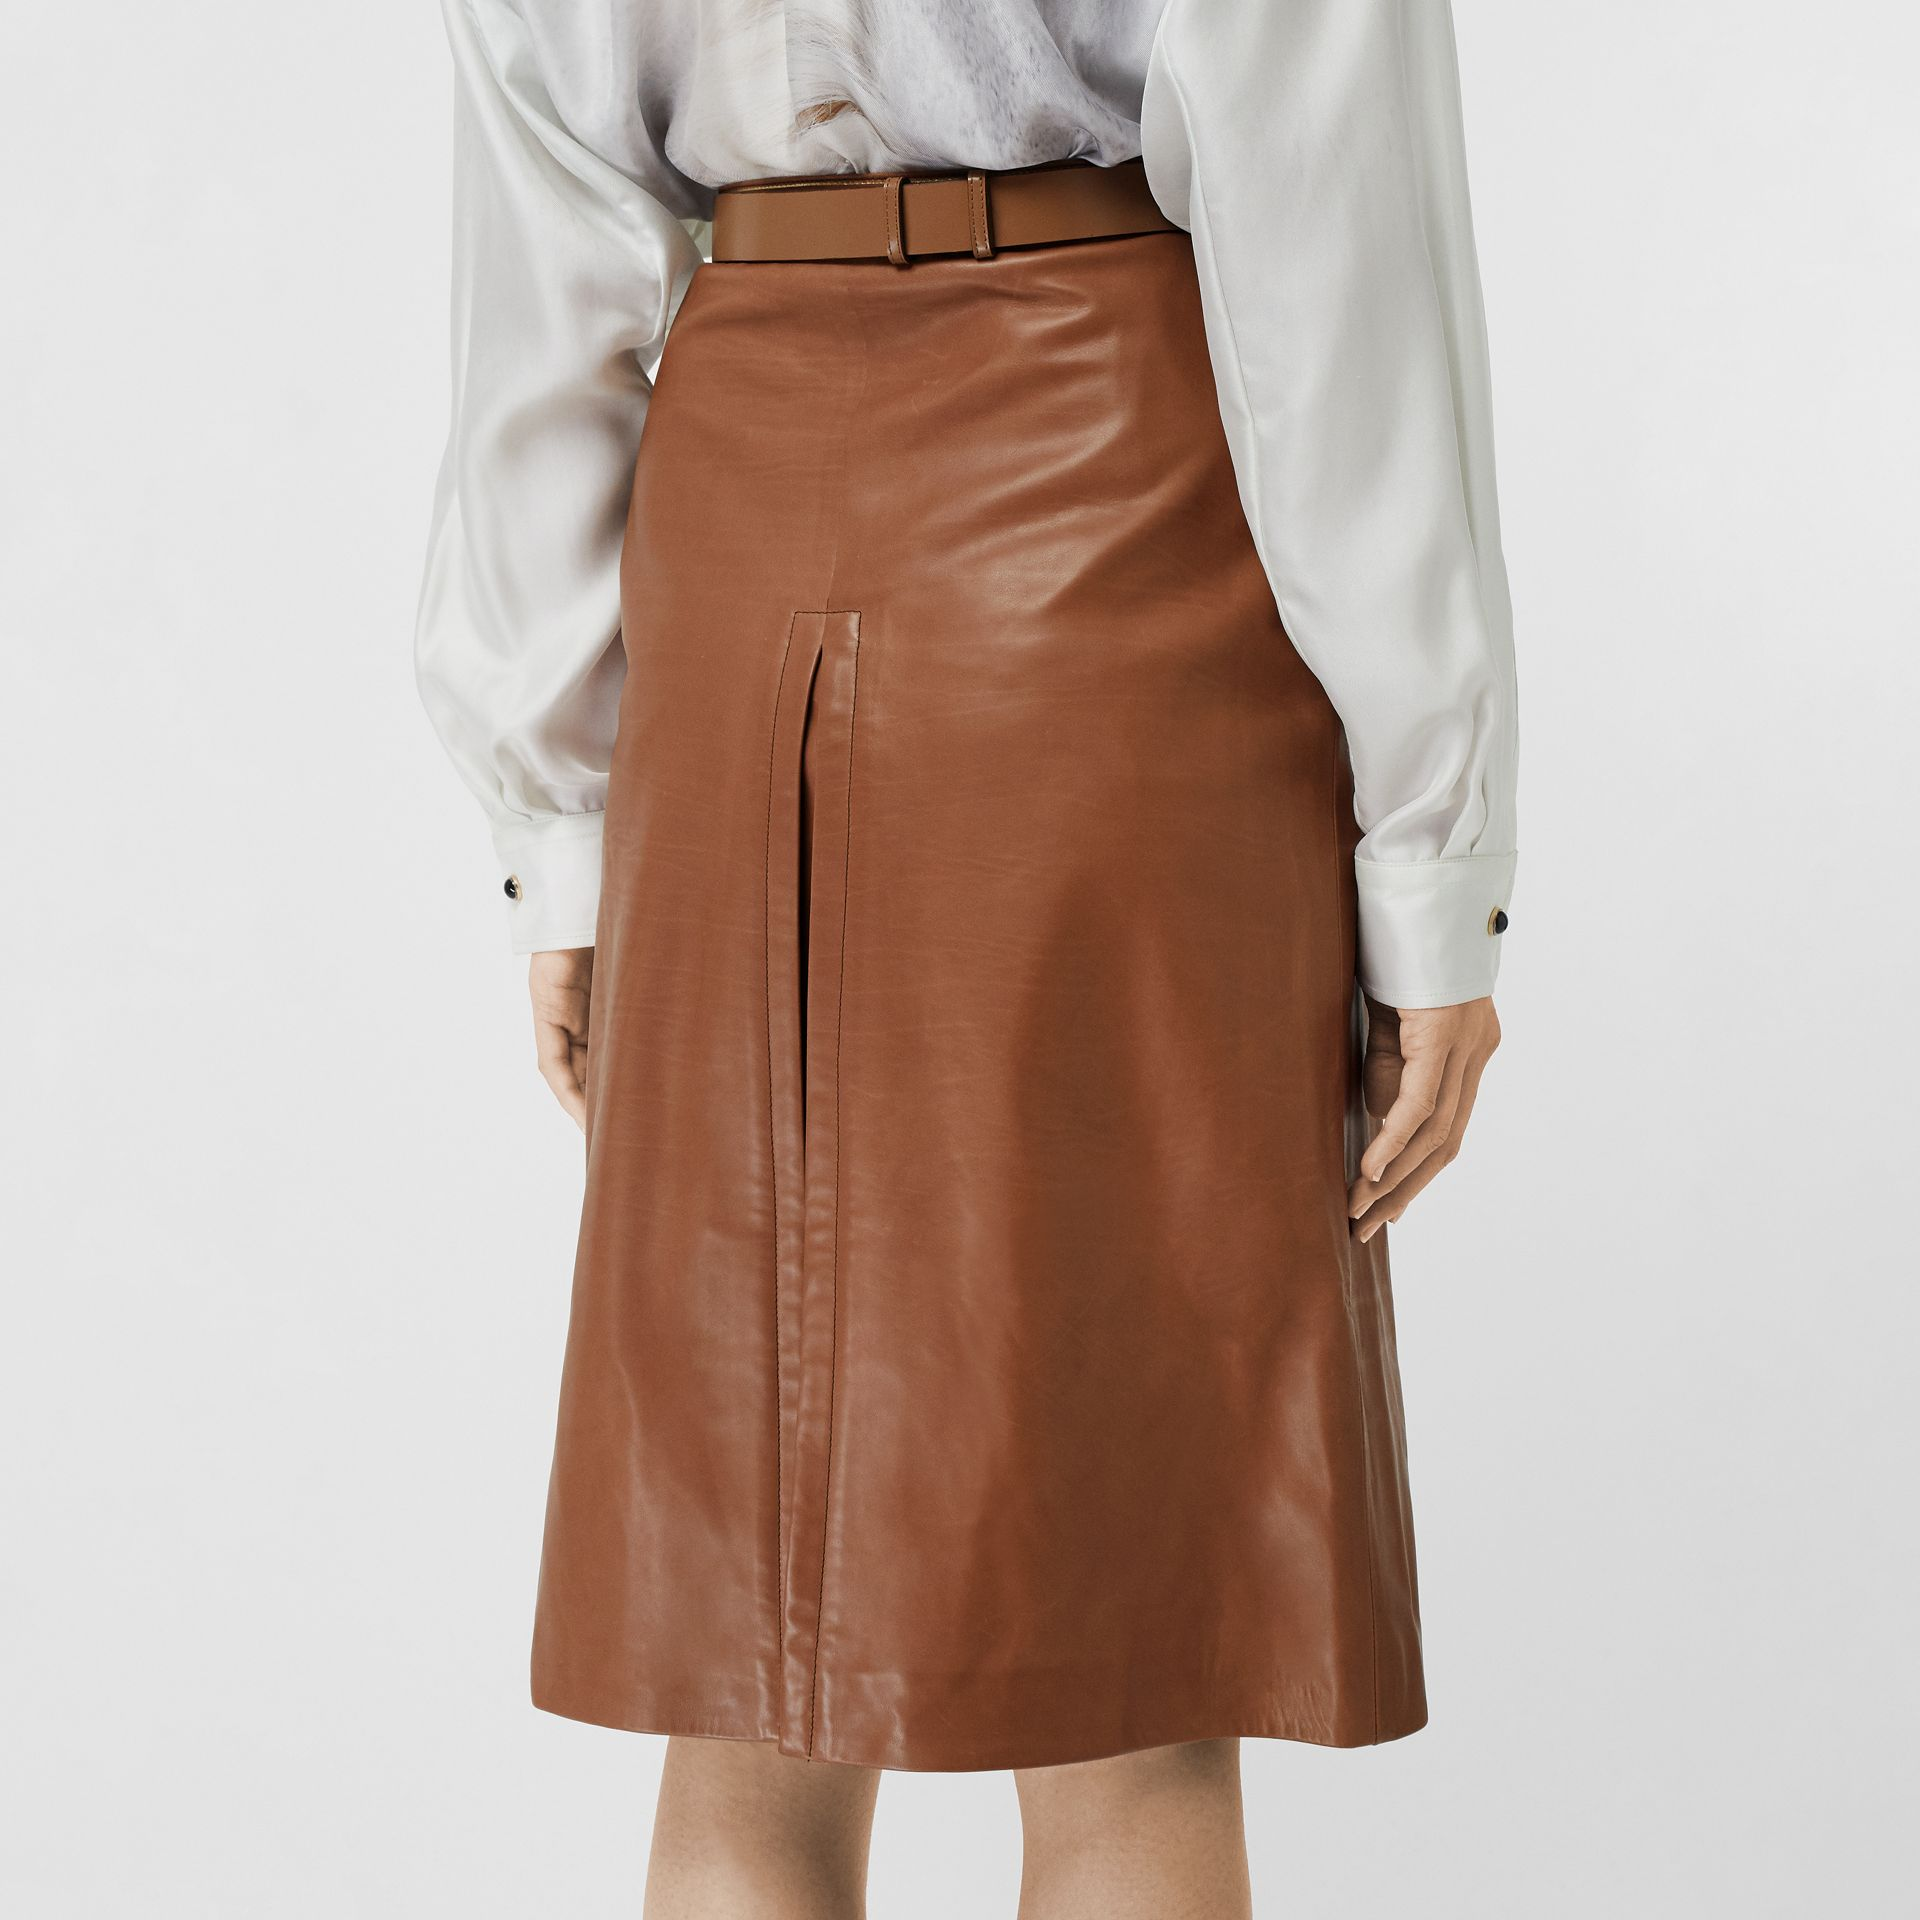 Box Pleat Detail Leather A-line Skirt in Flaxseed - Women | Burberry Australia - gallery image 2